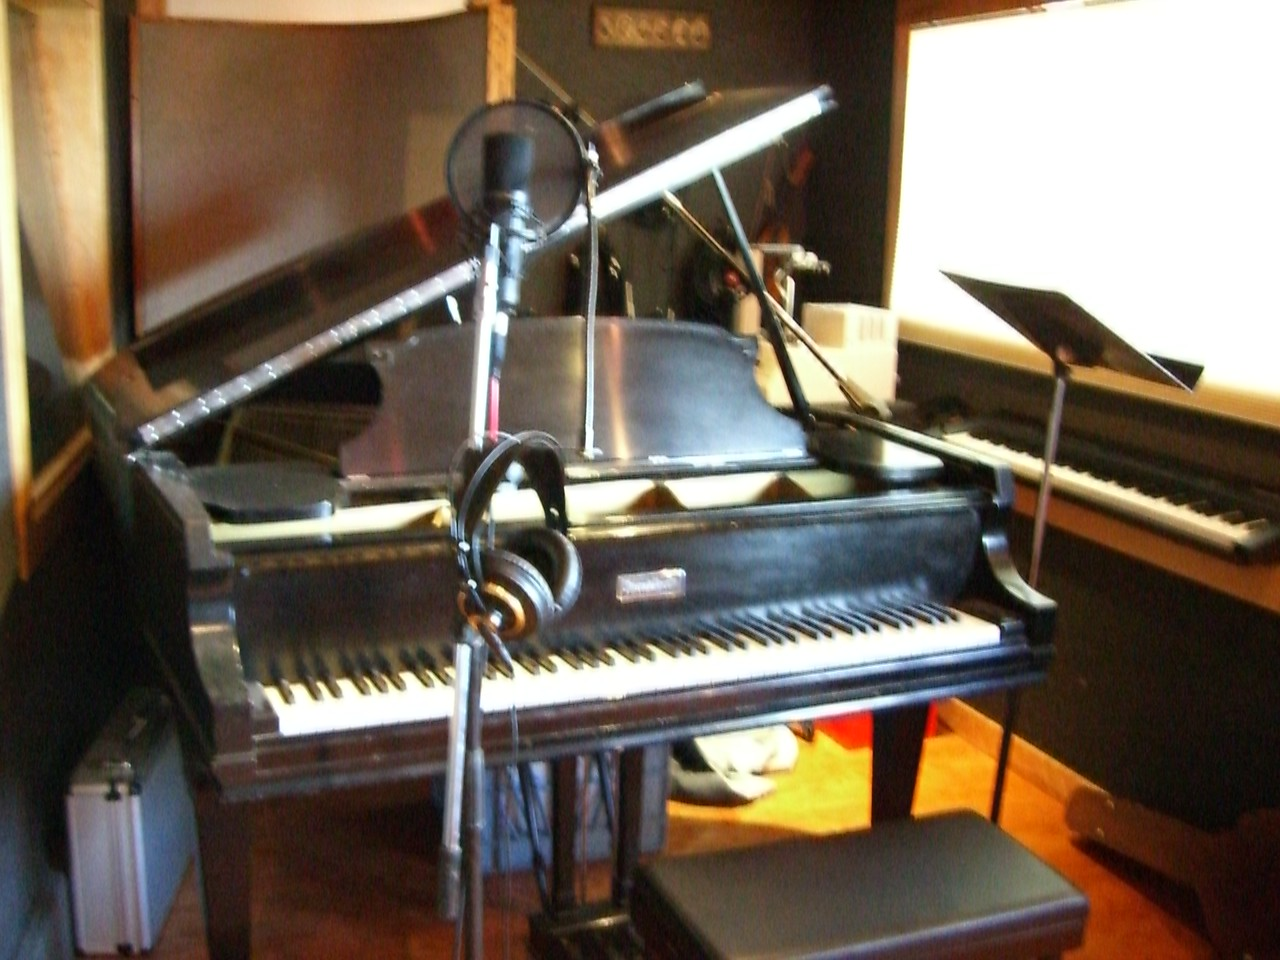 2006 03 01 Wed - At Bill Hare's studio - Piano & mic